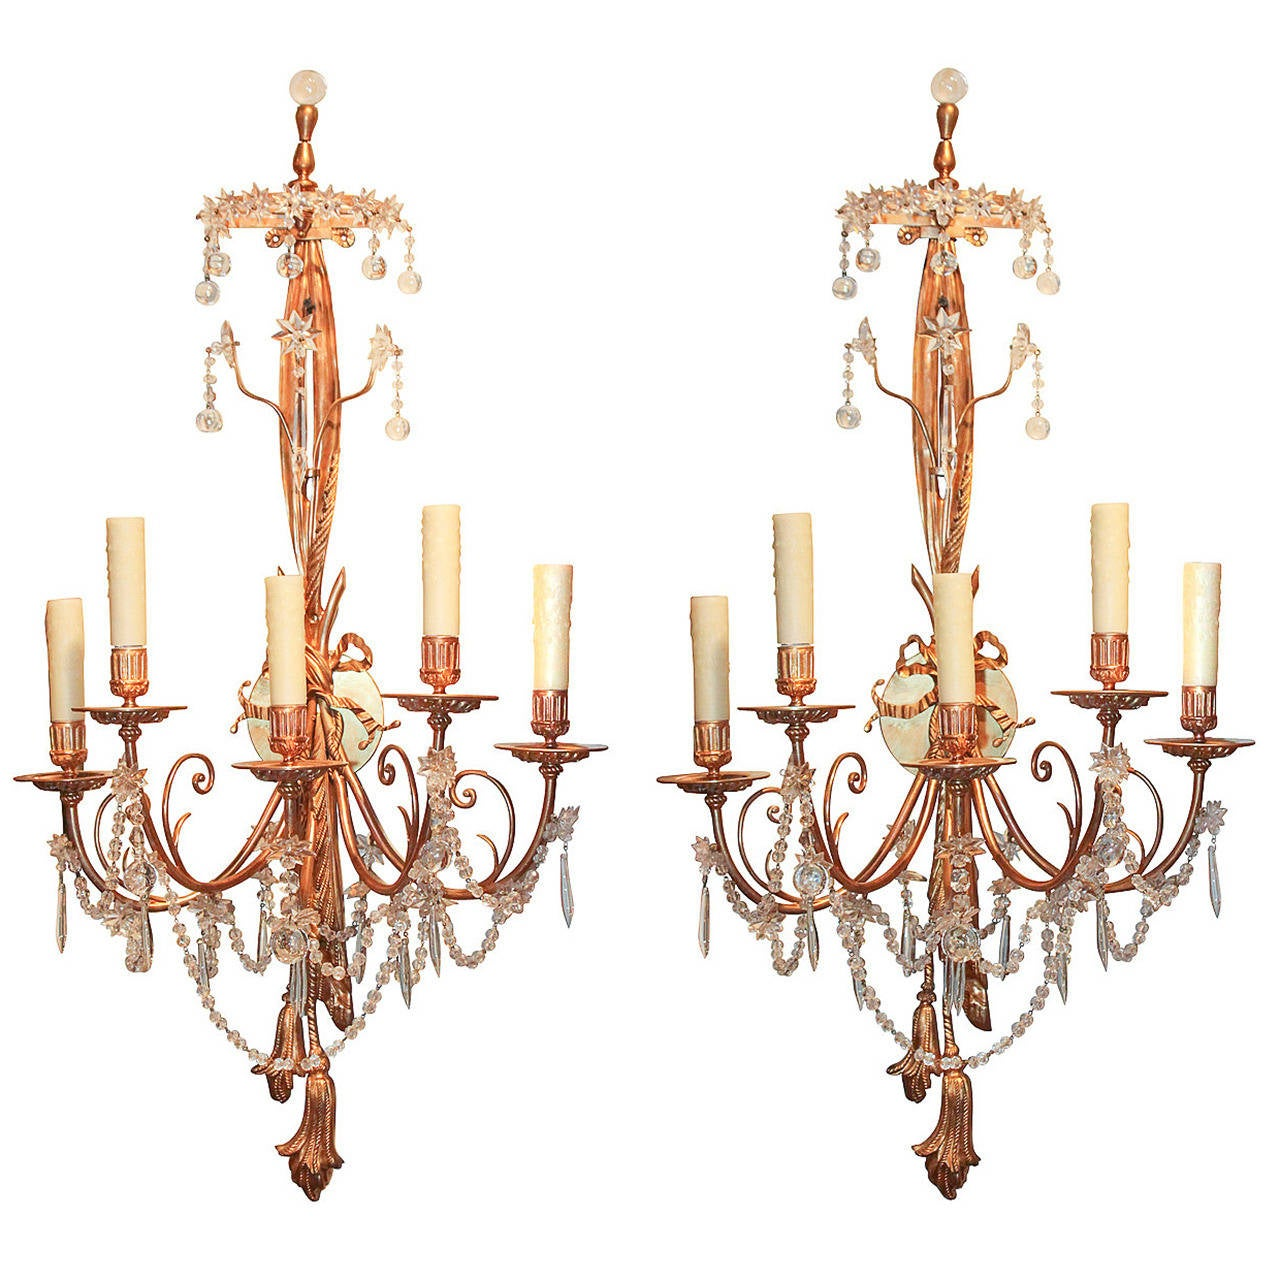 Fine 19th Century Pair of French Crystal Wall Sconces For Sale at 1stdibs